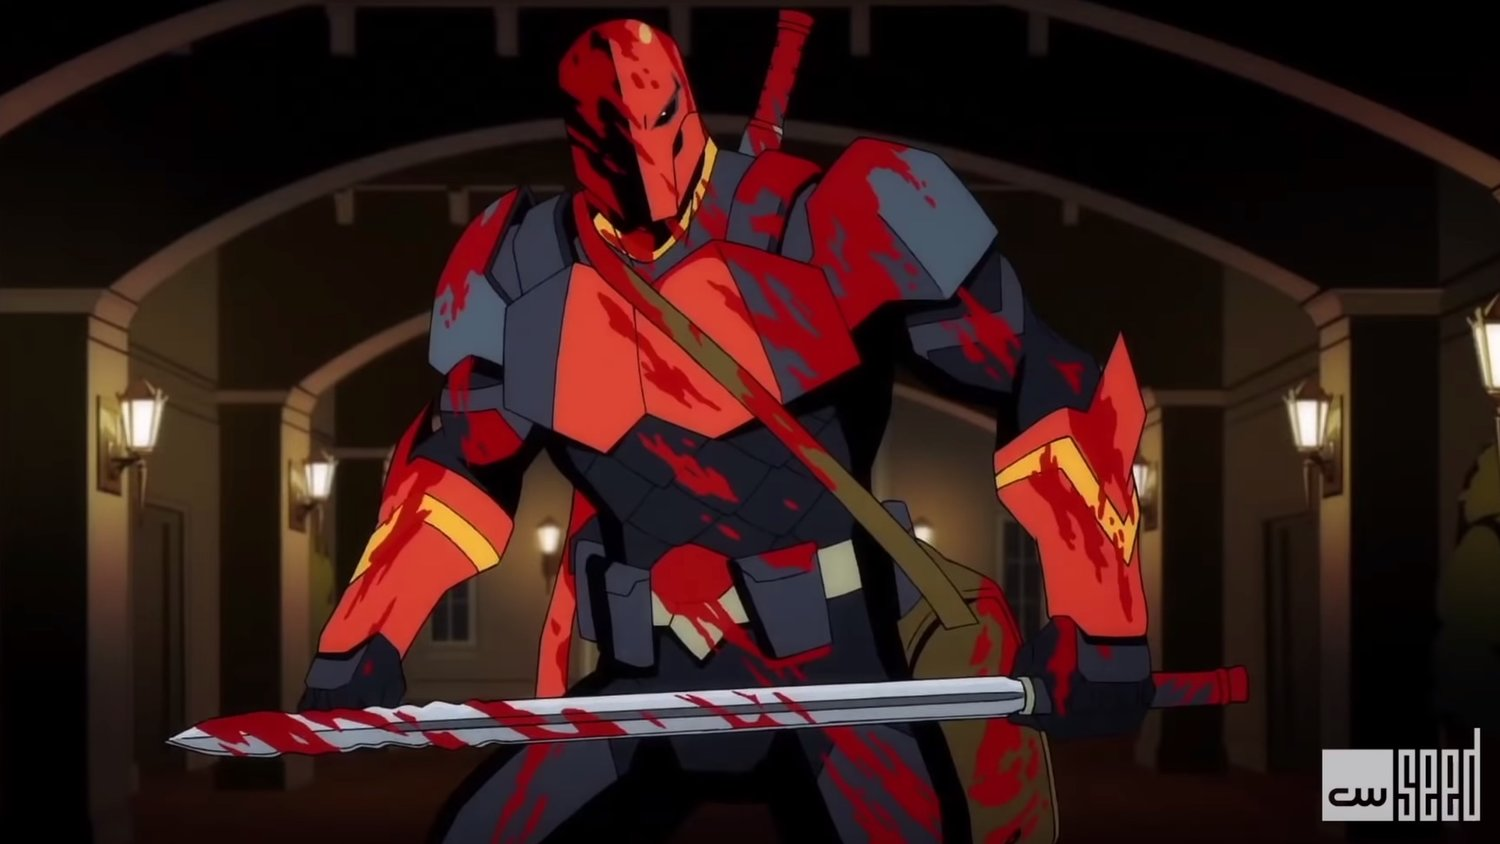 Bloody First Clip From DC's DEATHSTROKE: KNIGHT & DRAGONS Animated Series with Michael Chiklis